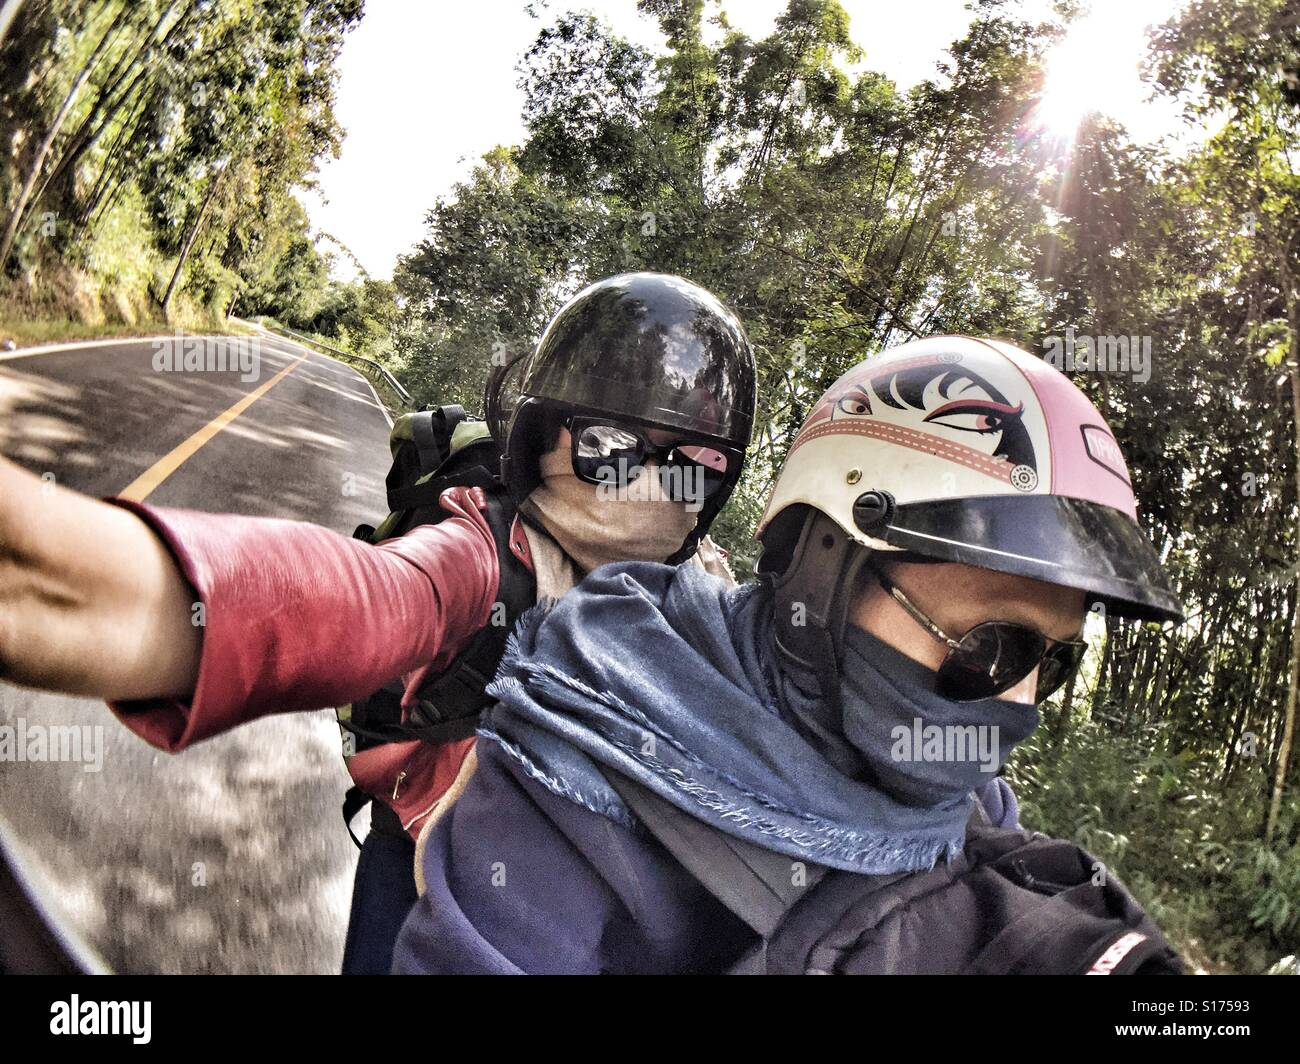 Traveller selfie on motorcycle Stock Photo